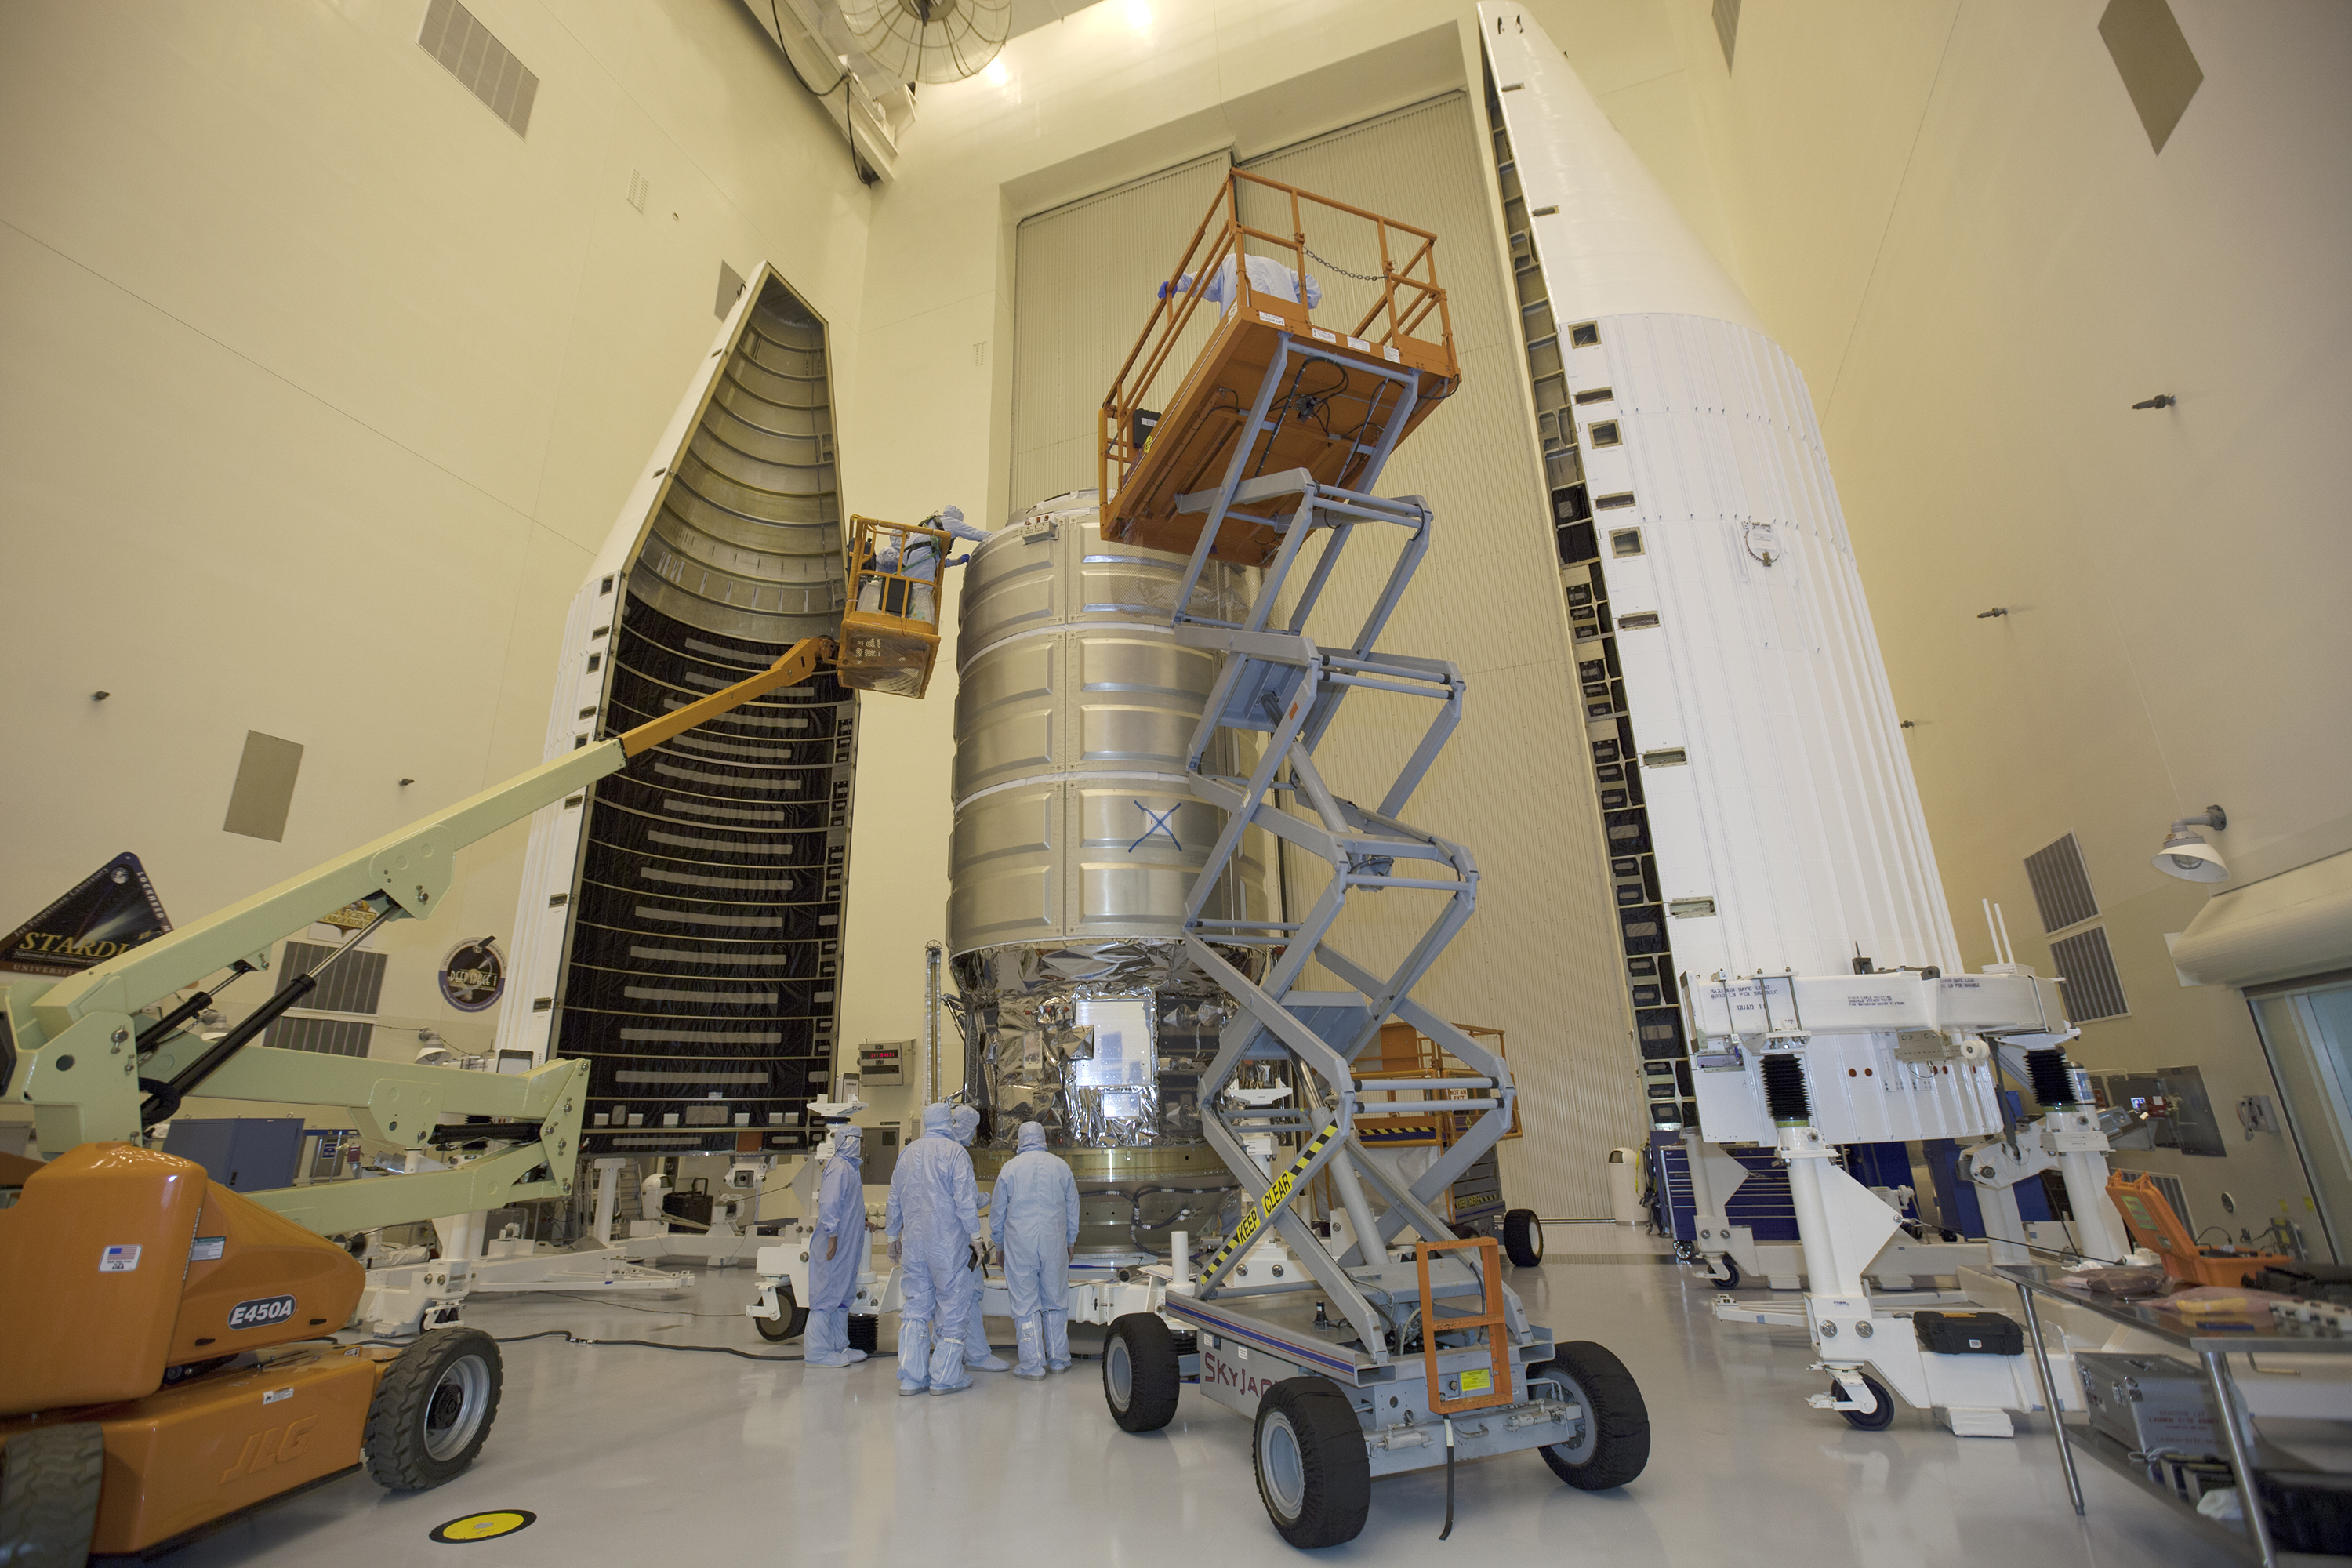 cygnus launch poised to bolster station science supplies nasa